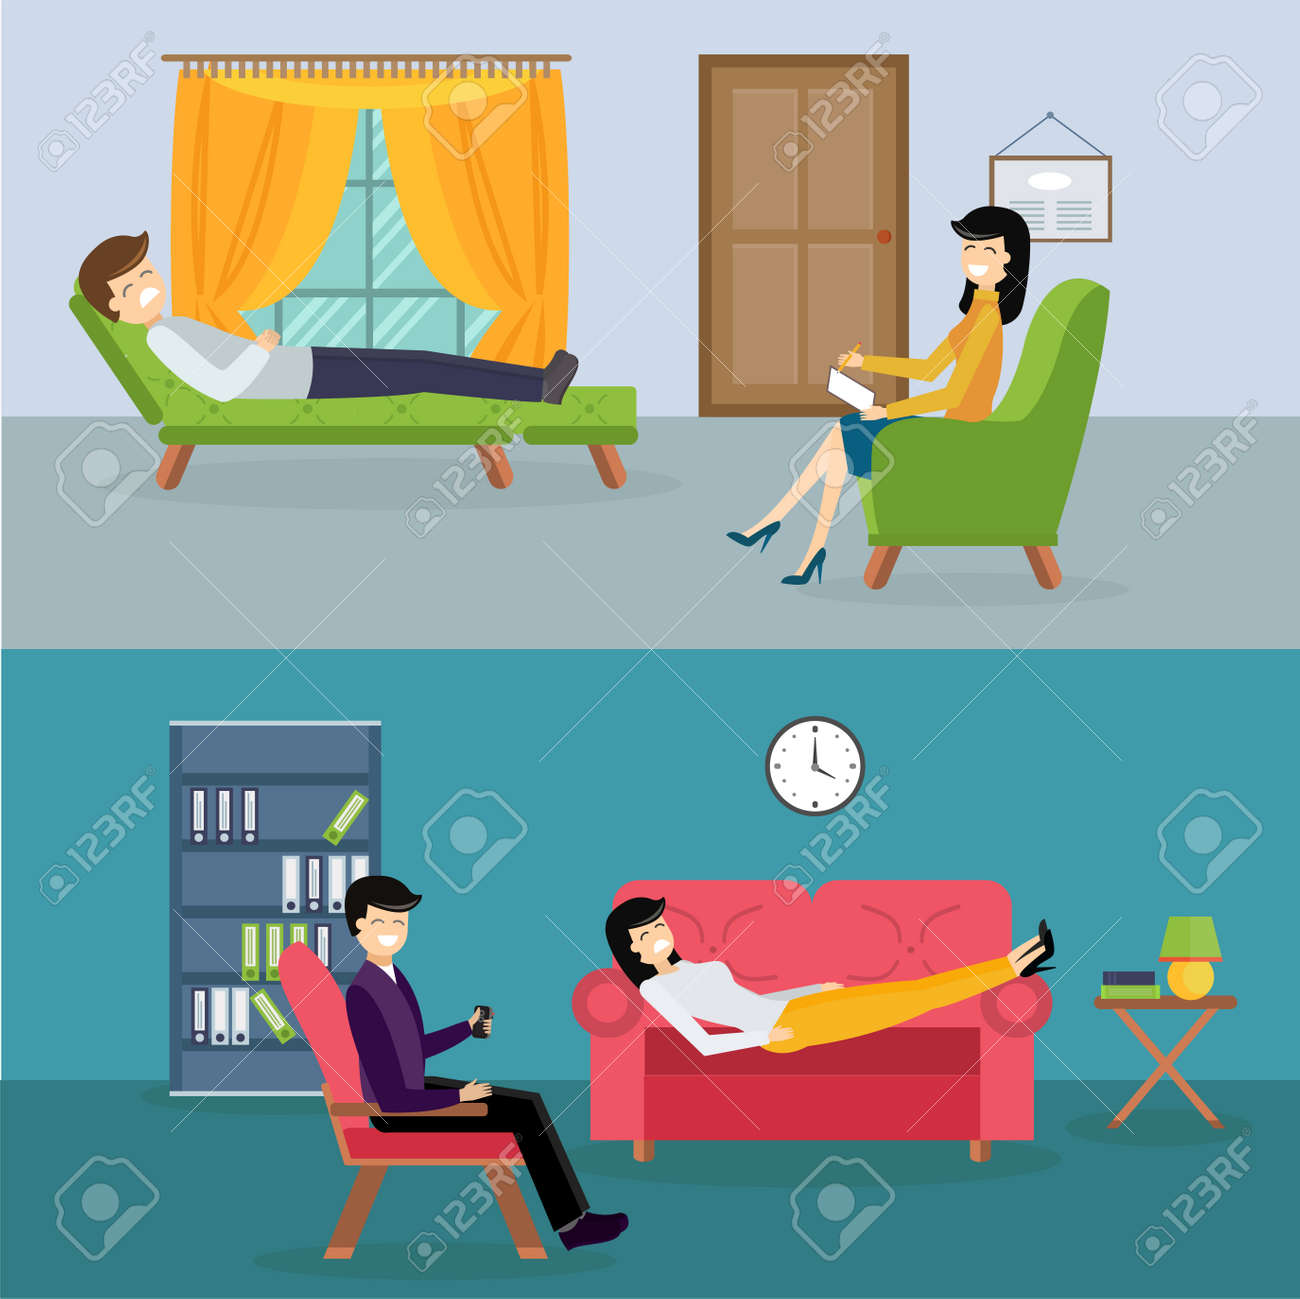 Psychologist Office Cabinet Room Vector Illustration. Psychologist Having  Psychological Therapy Session. Psychologist Office Illustration